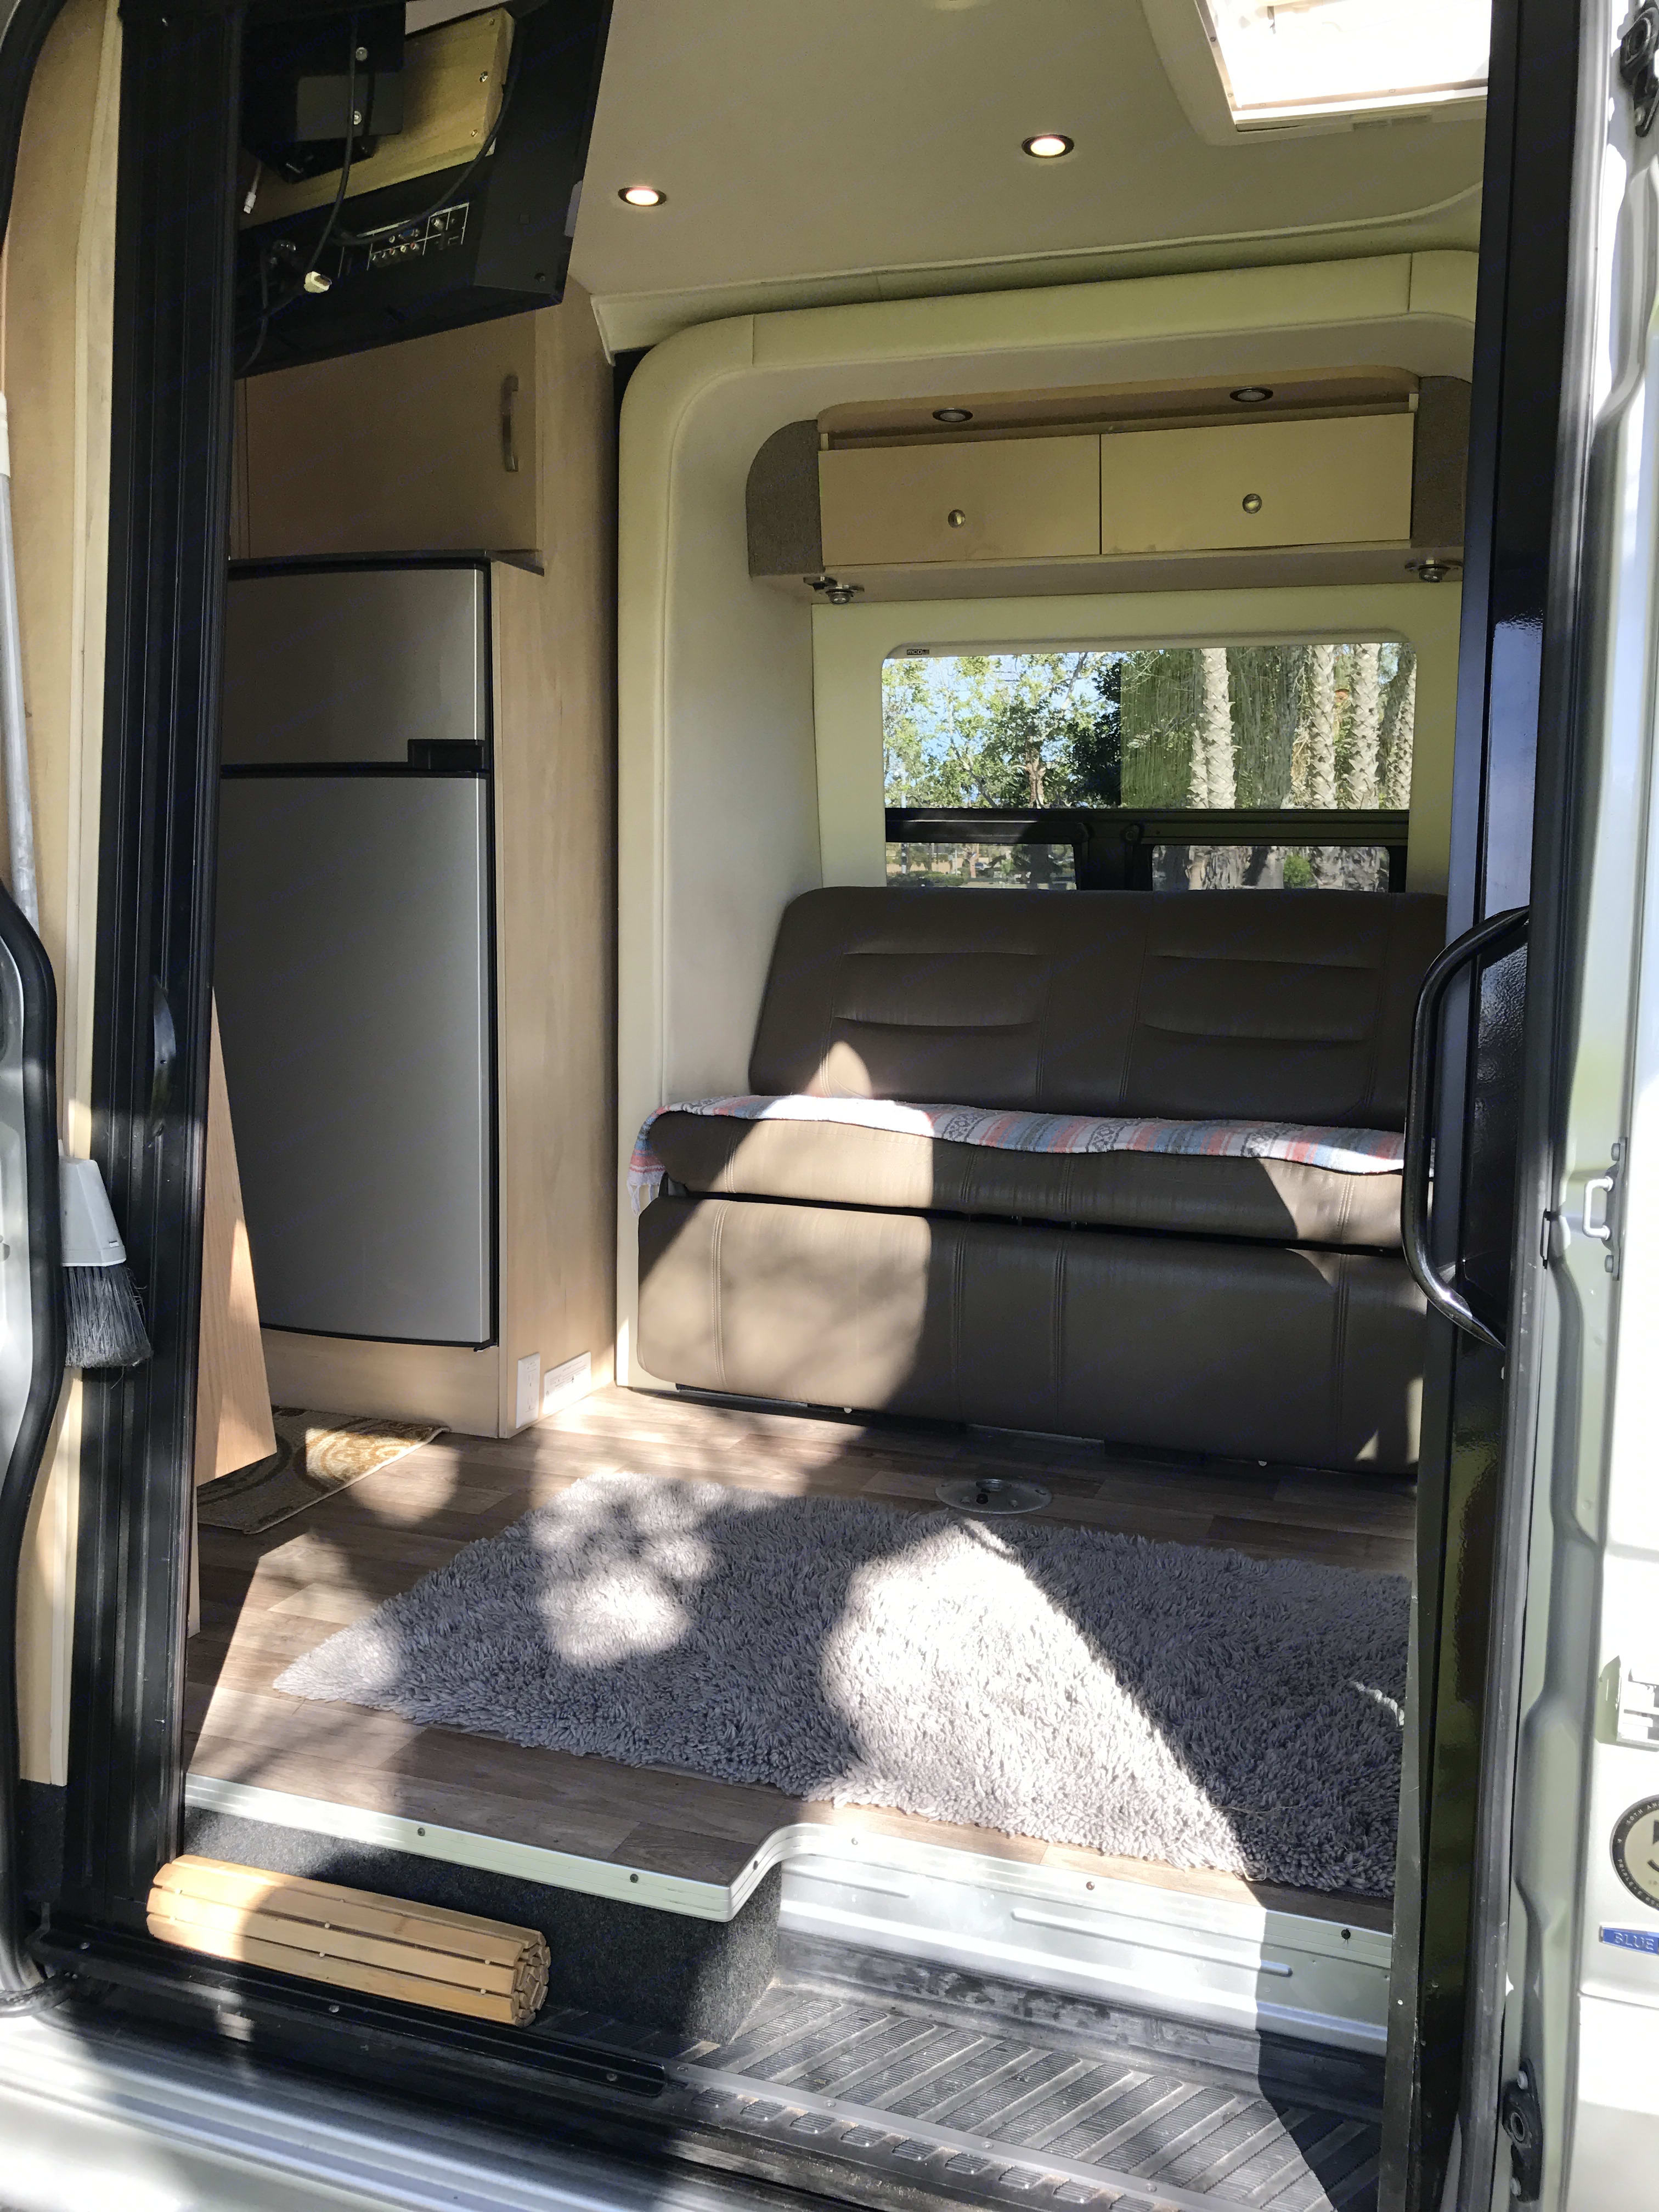 Living space.  Look at the size of that fridge and freezer! . Leisure Travel Free Spirit 2016